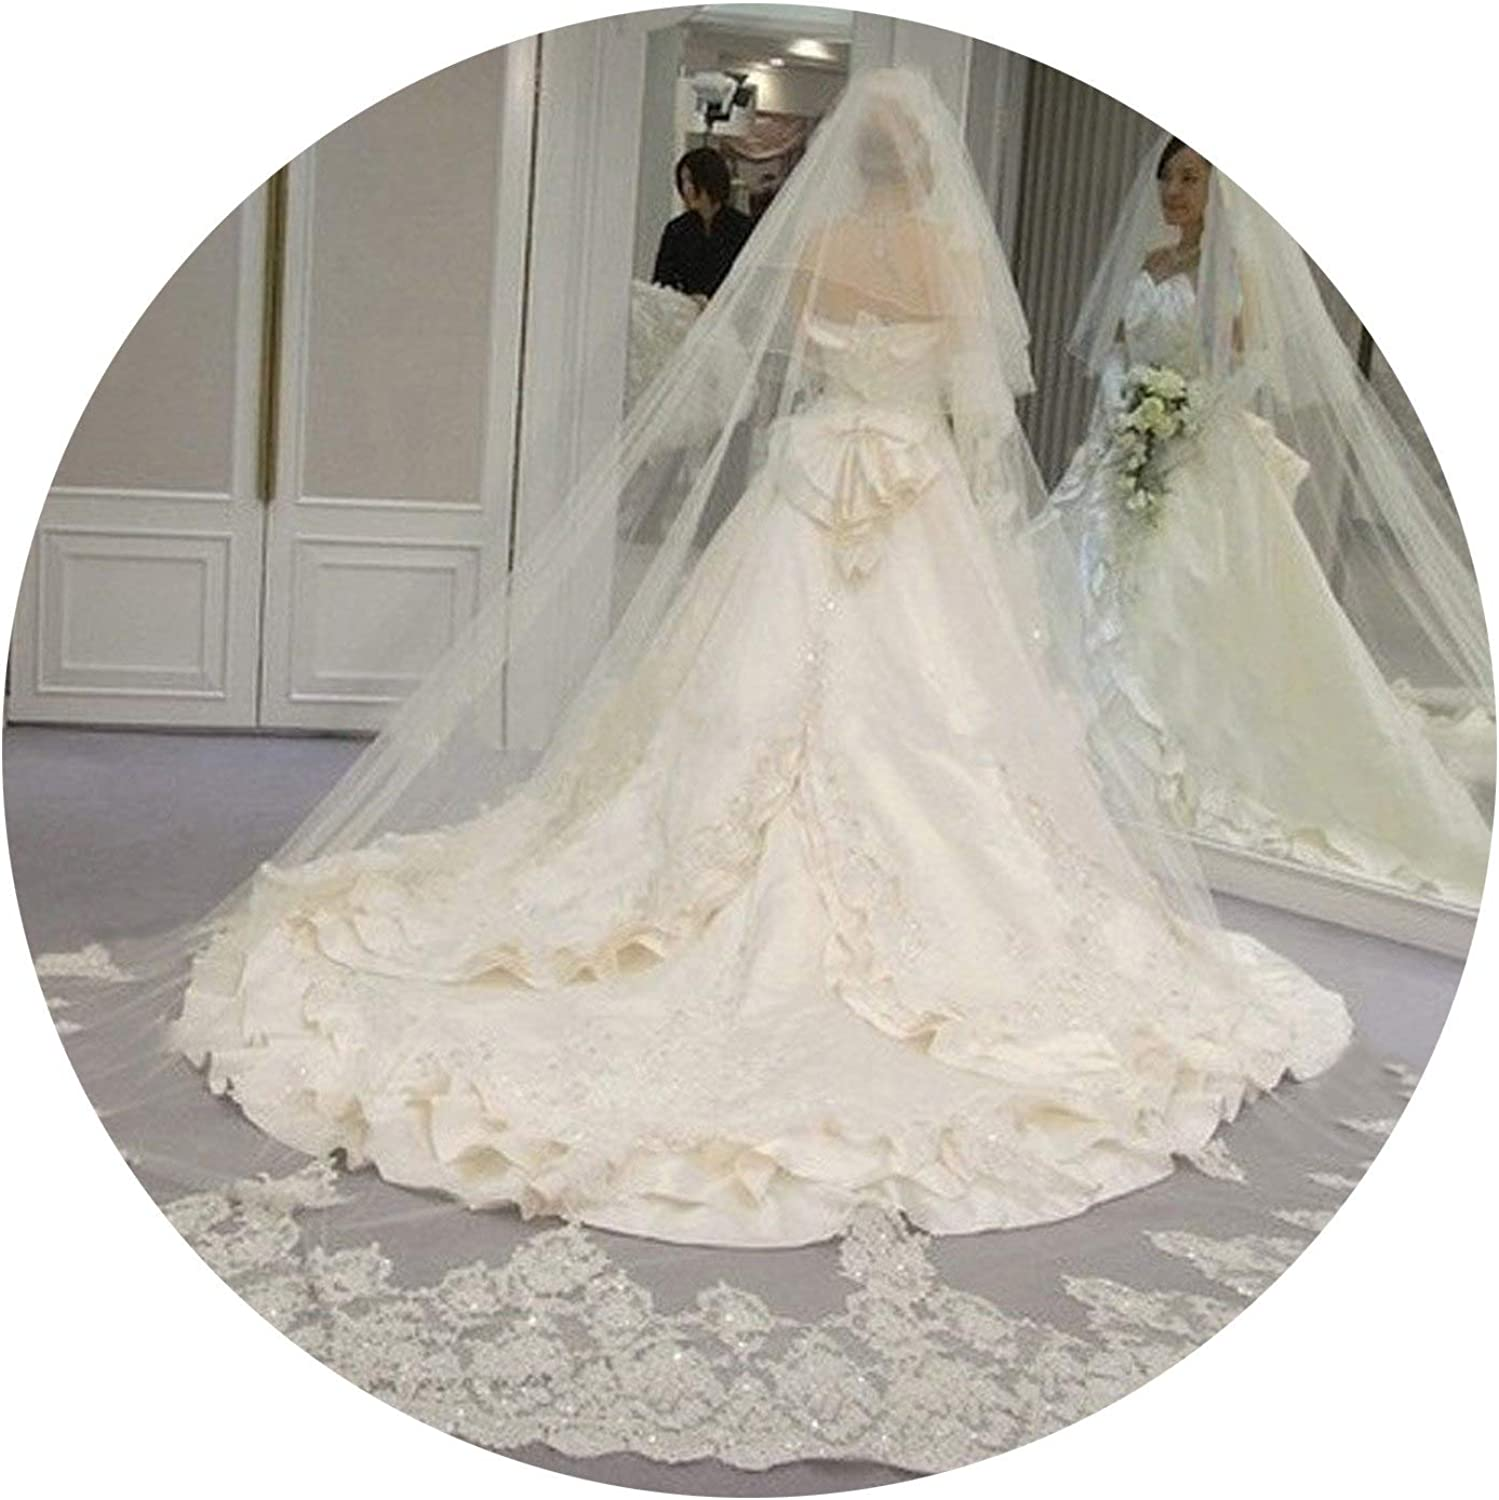 4 Meters 2T White & Ivory Sequins Blings Sparkling Lace Edge Purfle Long Cathedral Wedding Veils,Ivory